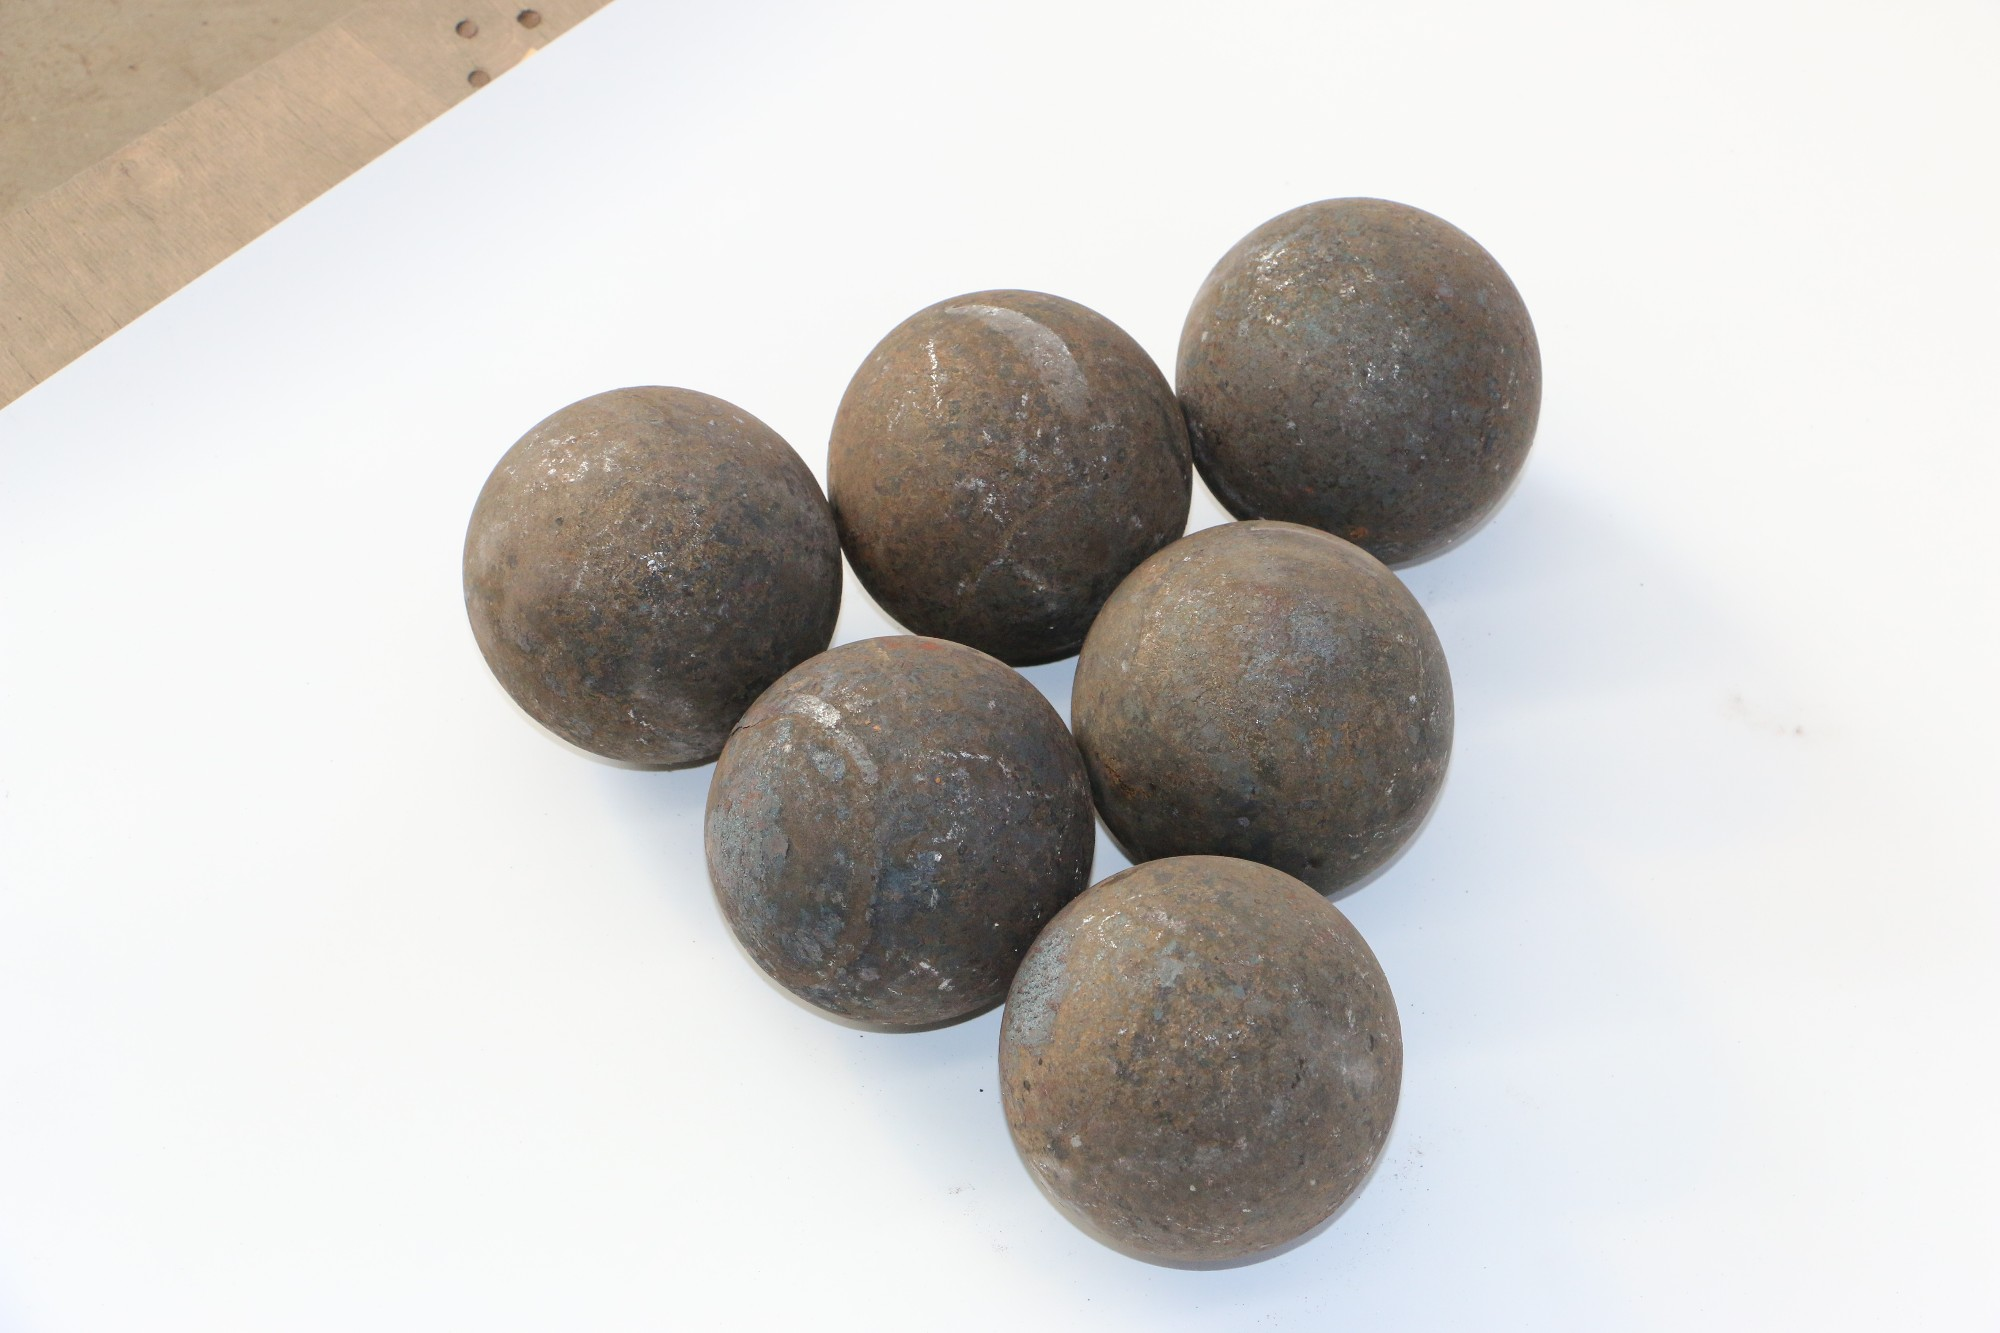 SGS Verified Forged SAG Mill Grinding Balls For Power Station And Mining Manufacturers, SGS Verified Forged SAG Mill Grinding Balls For Power Station And Mining Factory, Supply SGS Verified Forged SAG Mill Grinding Balls For Power Station And Mining